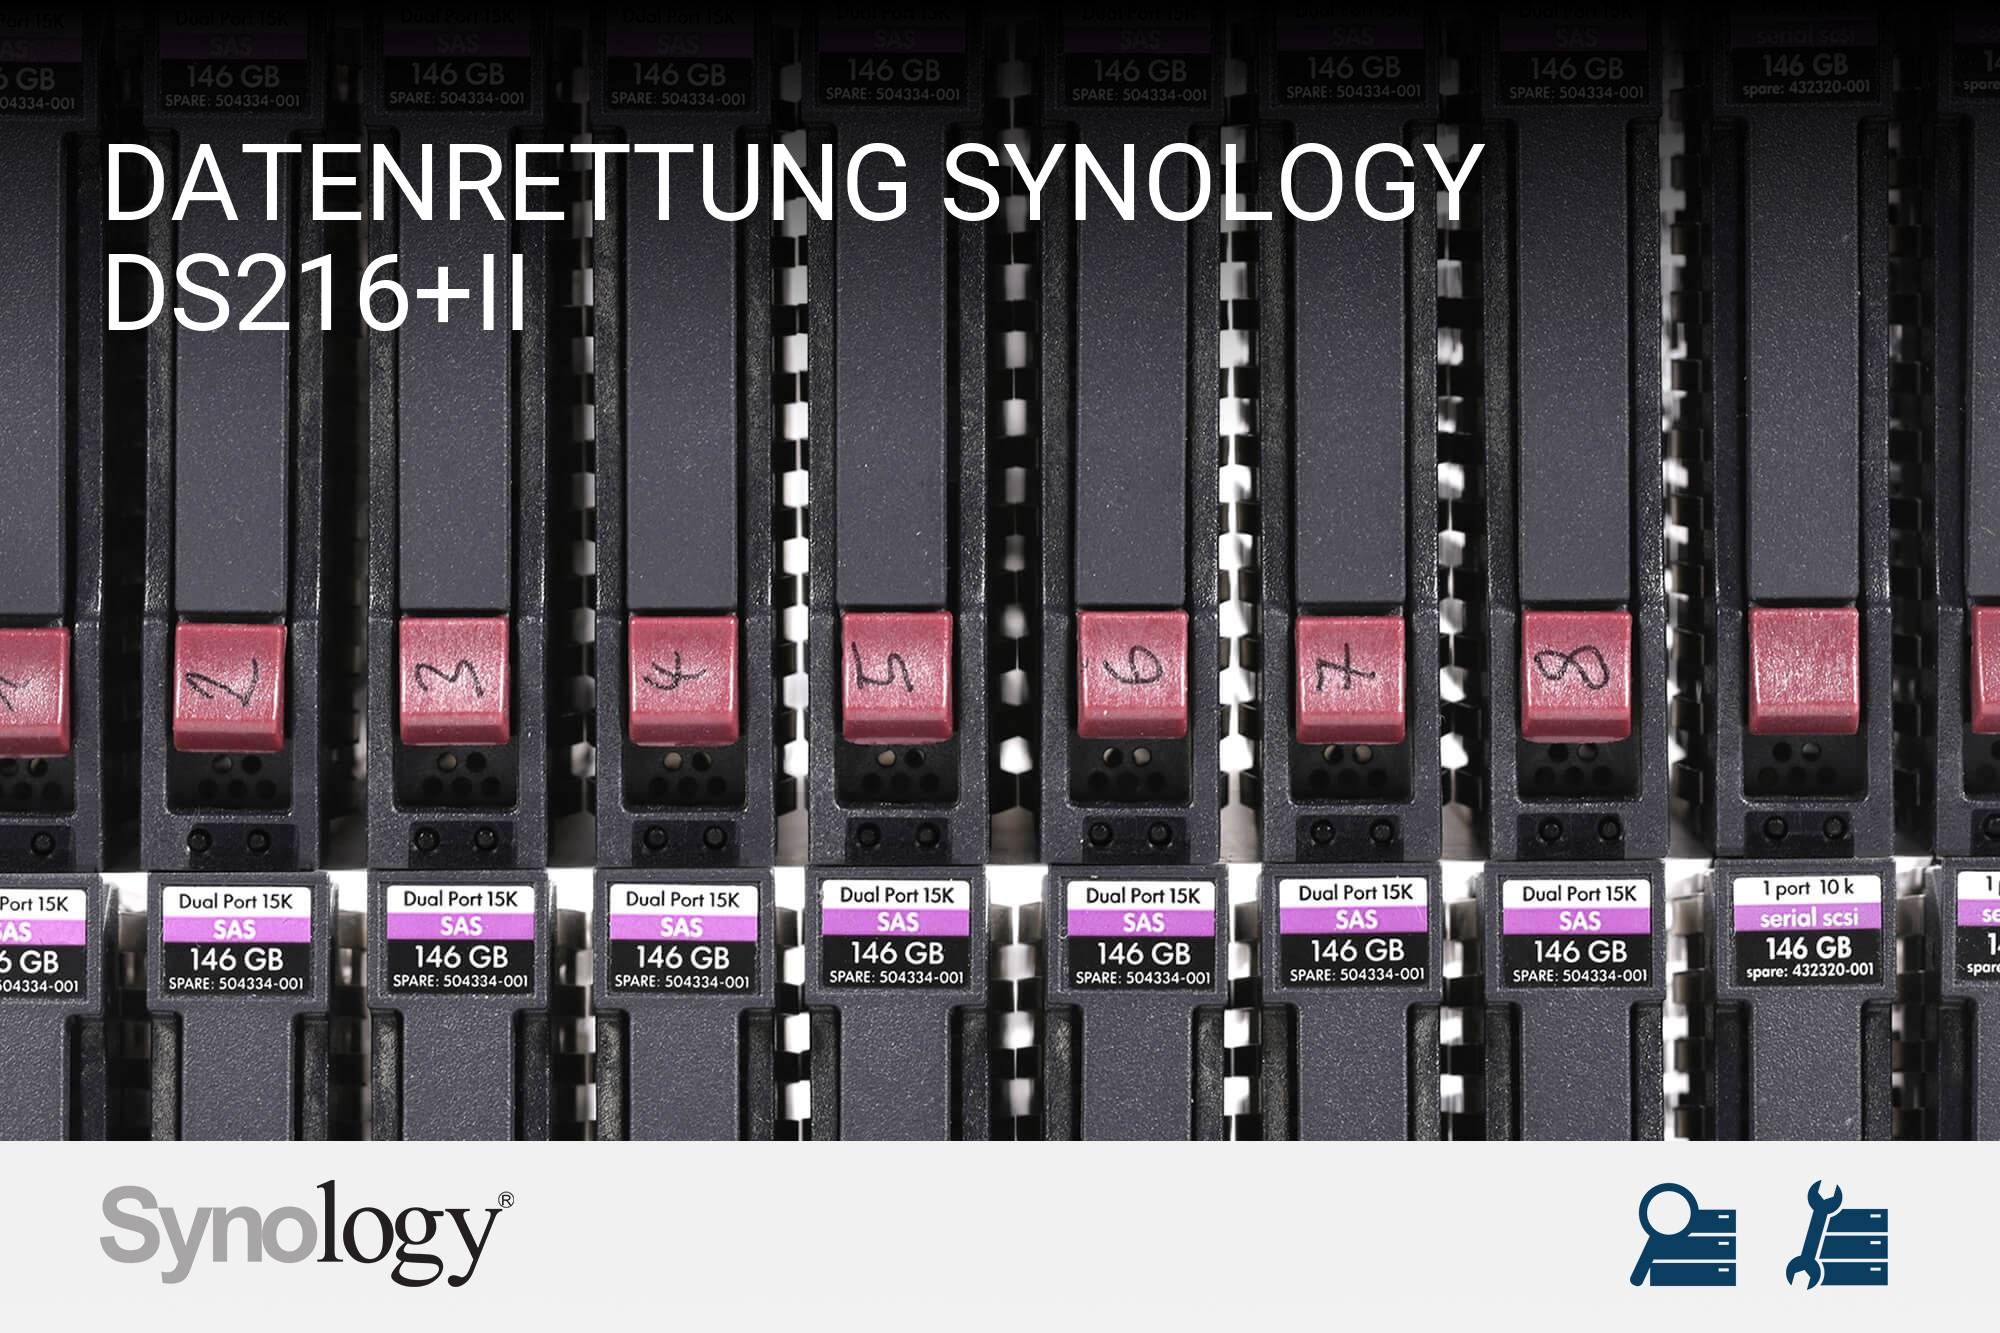 Synology DS216+II